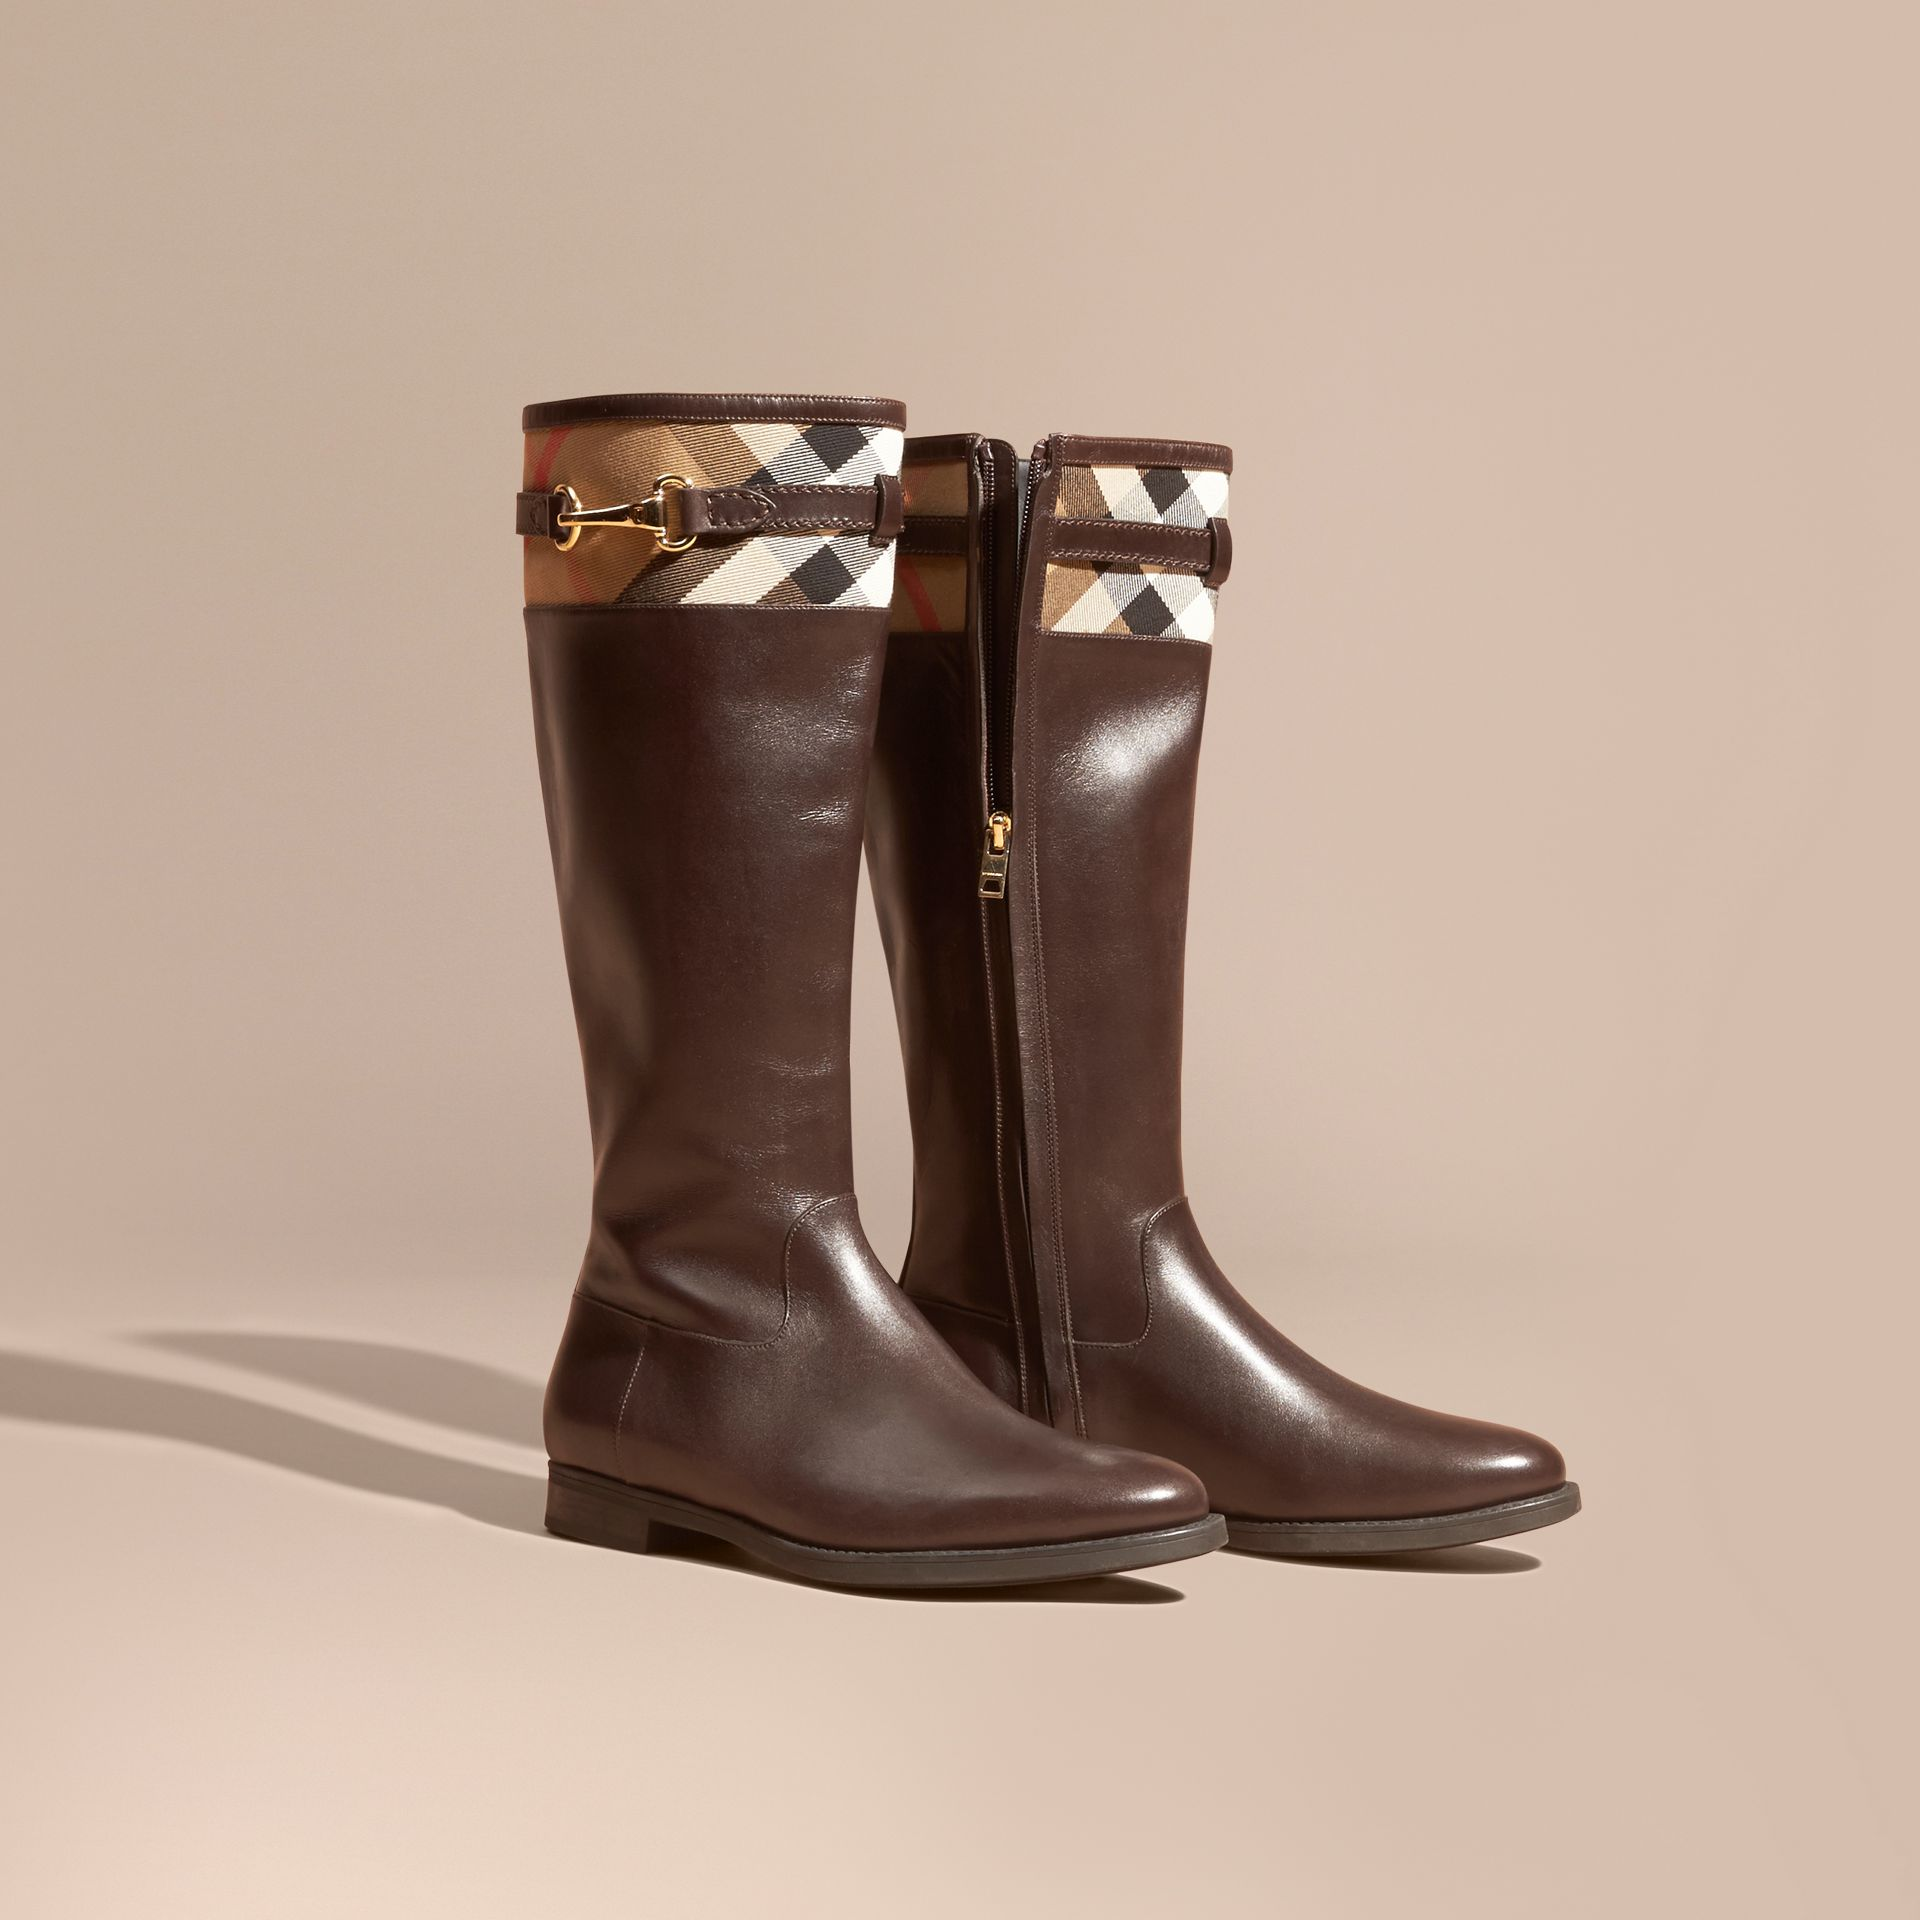 House Check Detail Leather Riding Boots - gallery image 1